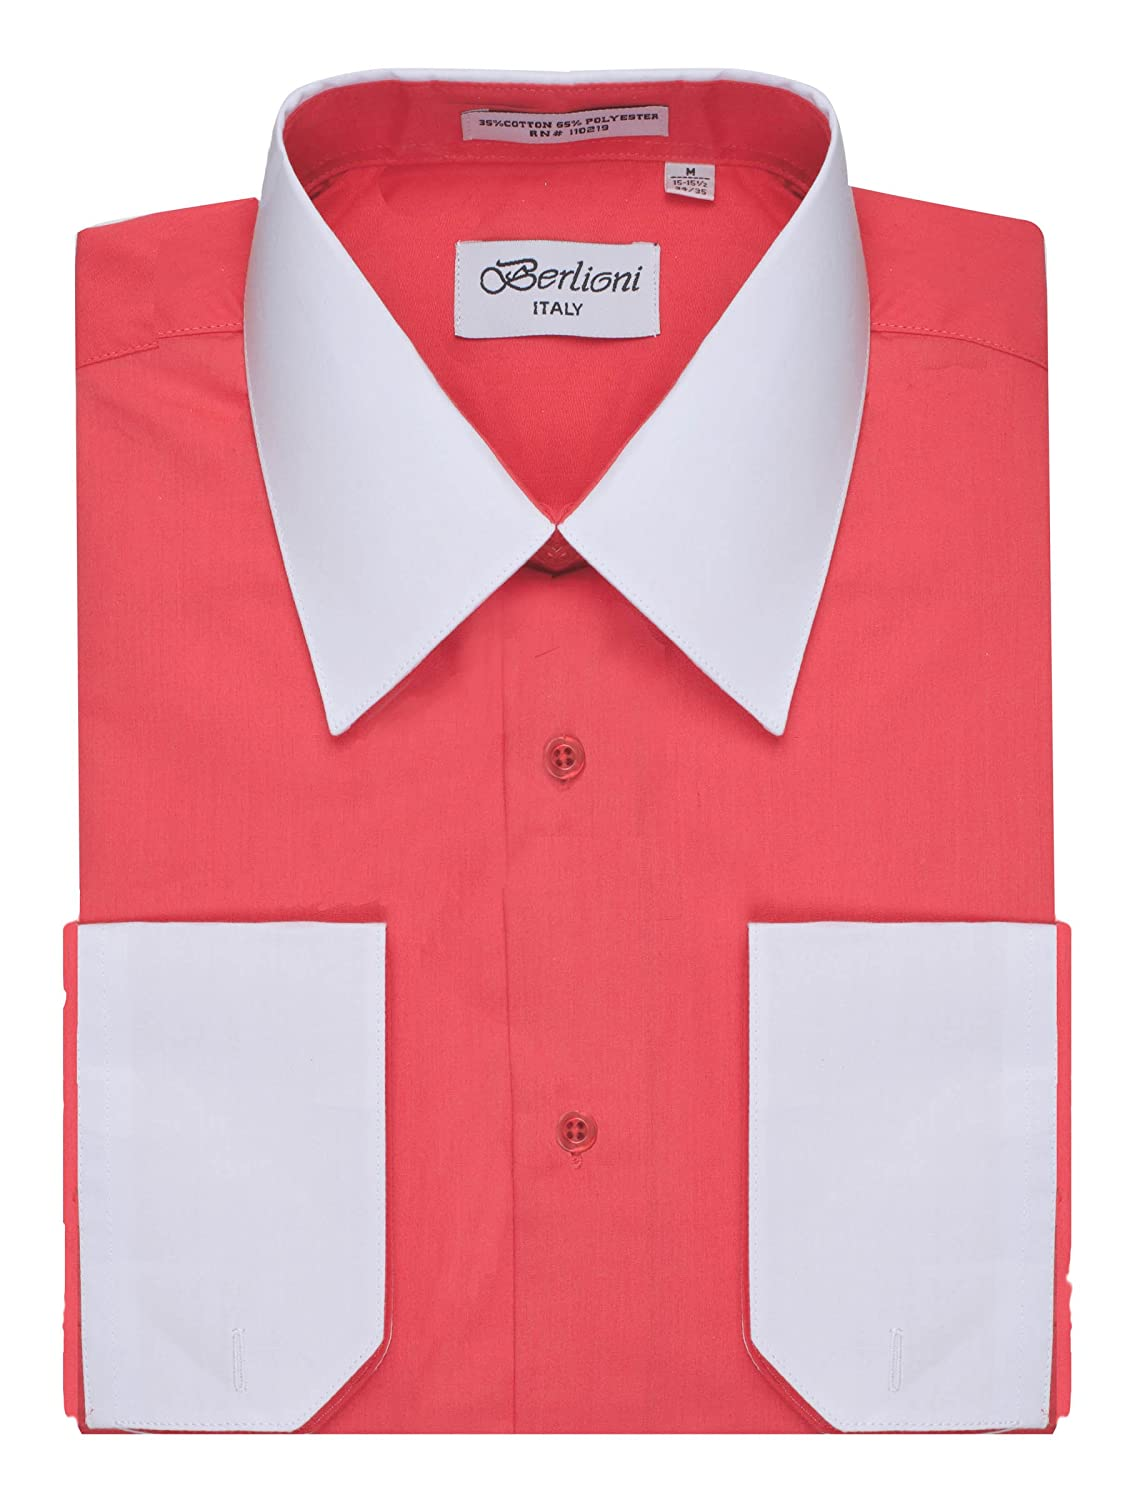 887ba373c77 Energized by a color block design where the notch cuffs and classic pointed  collar are a different color than the rest of the shirt